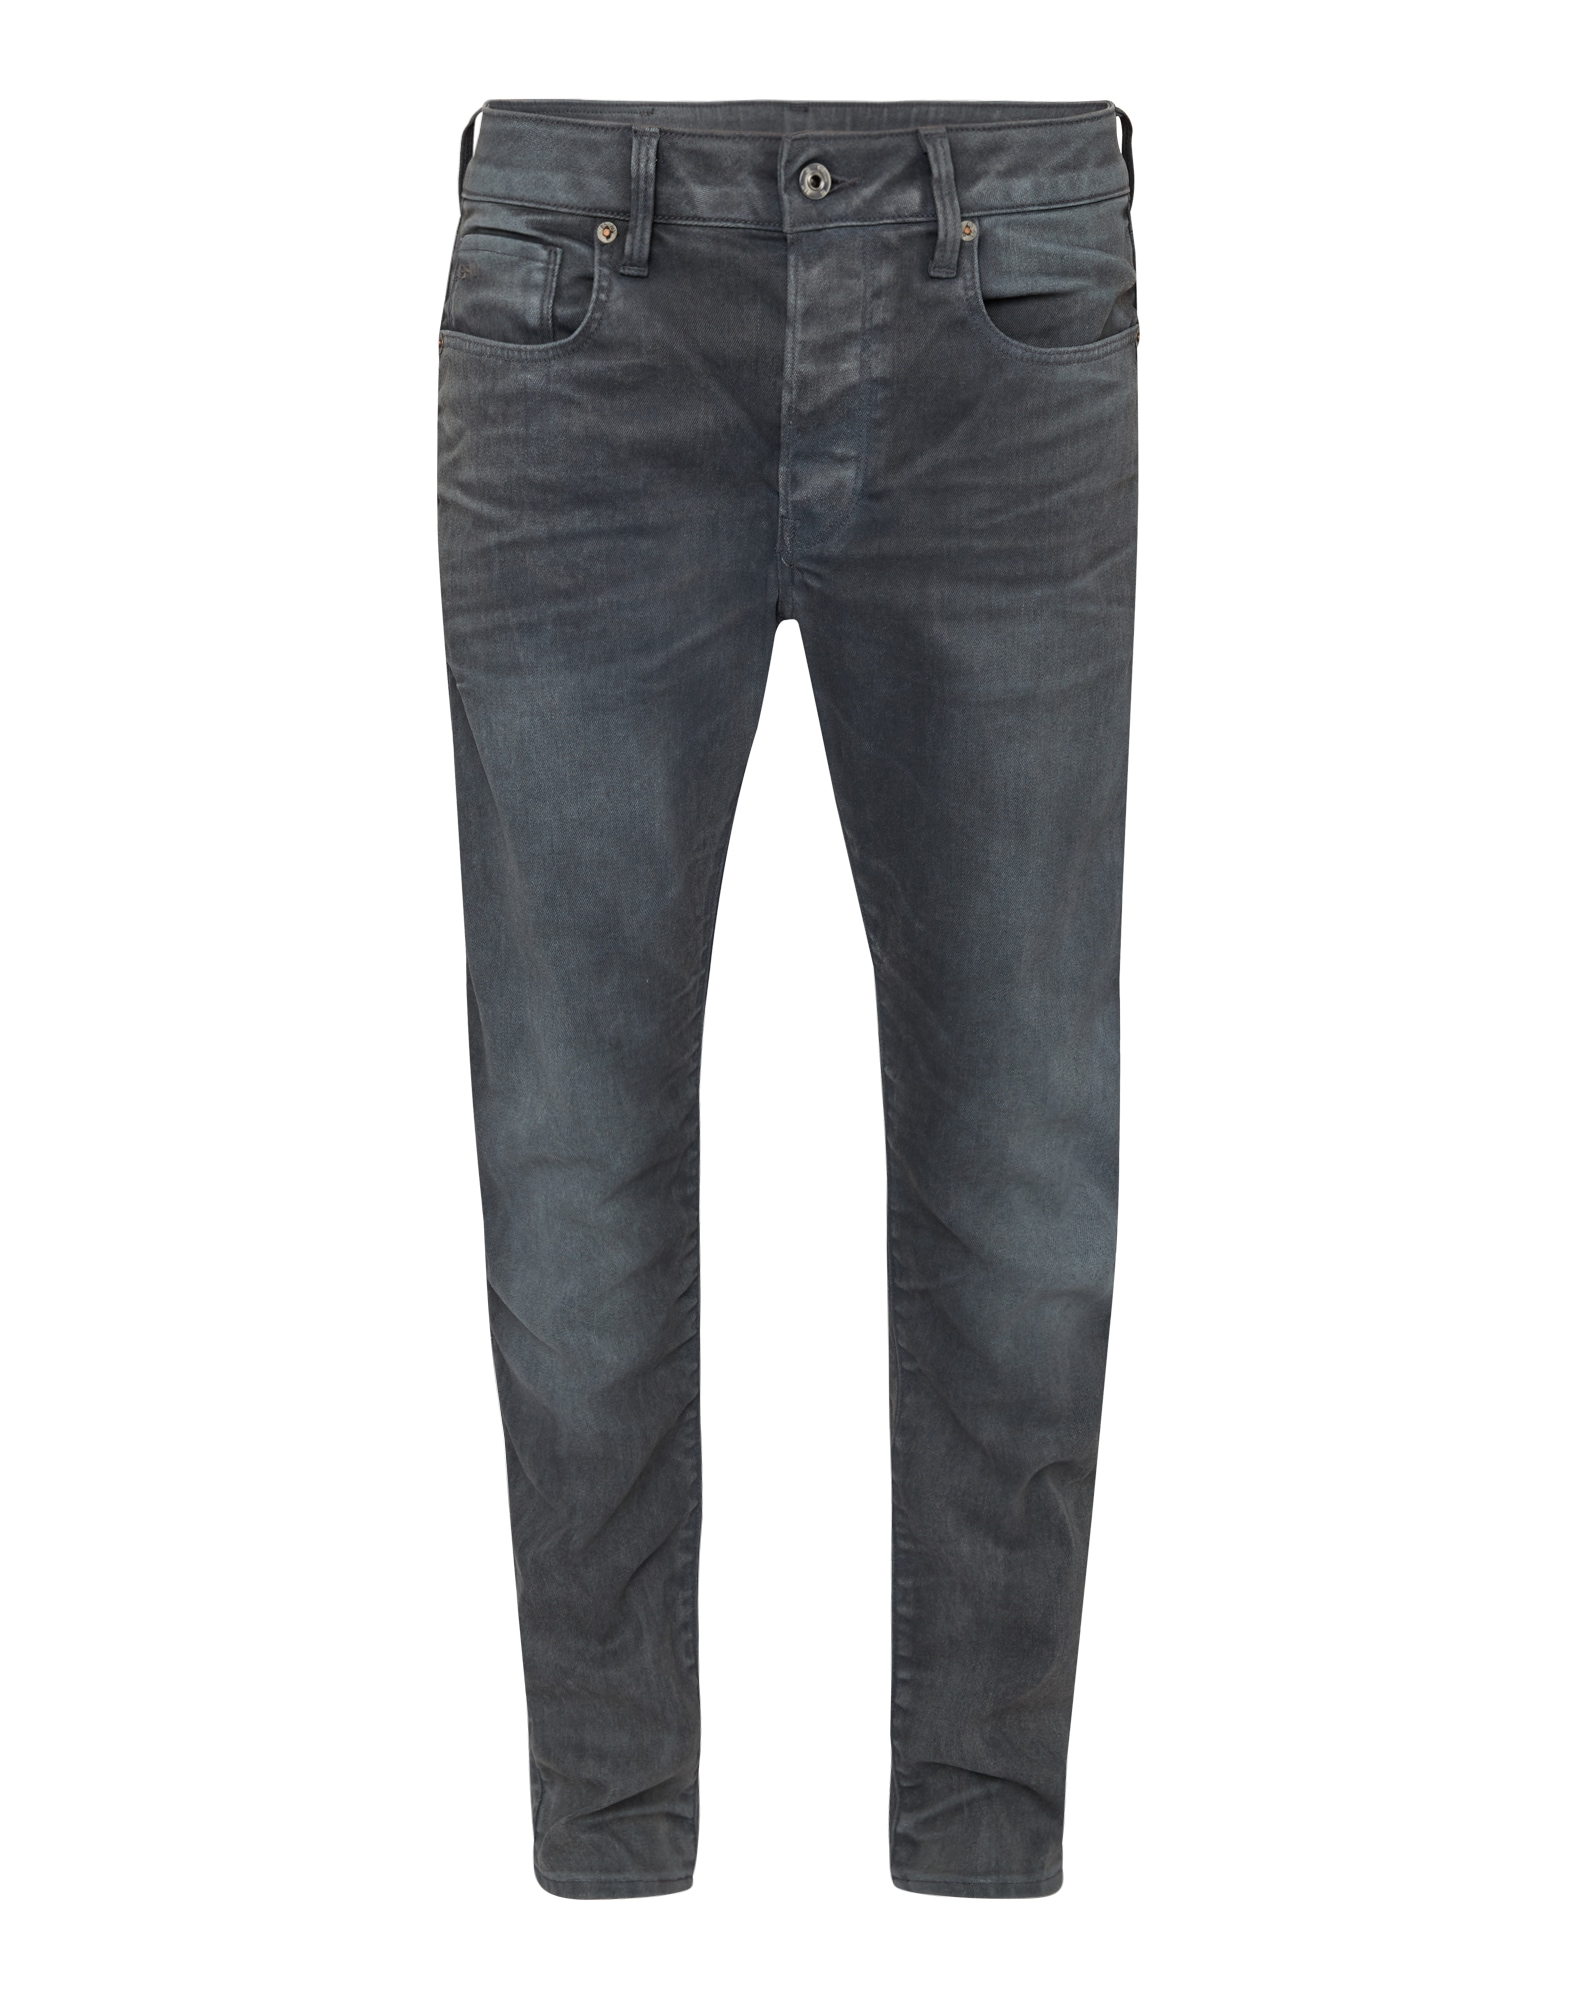 G-STAR RAW Heren Jeans 3301 Slim grey denim